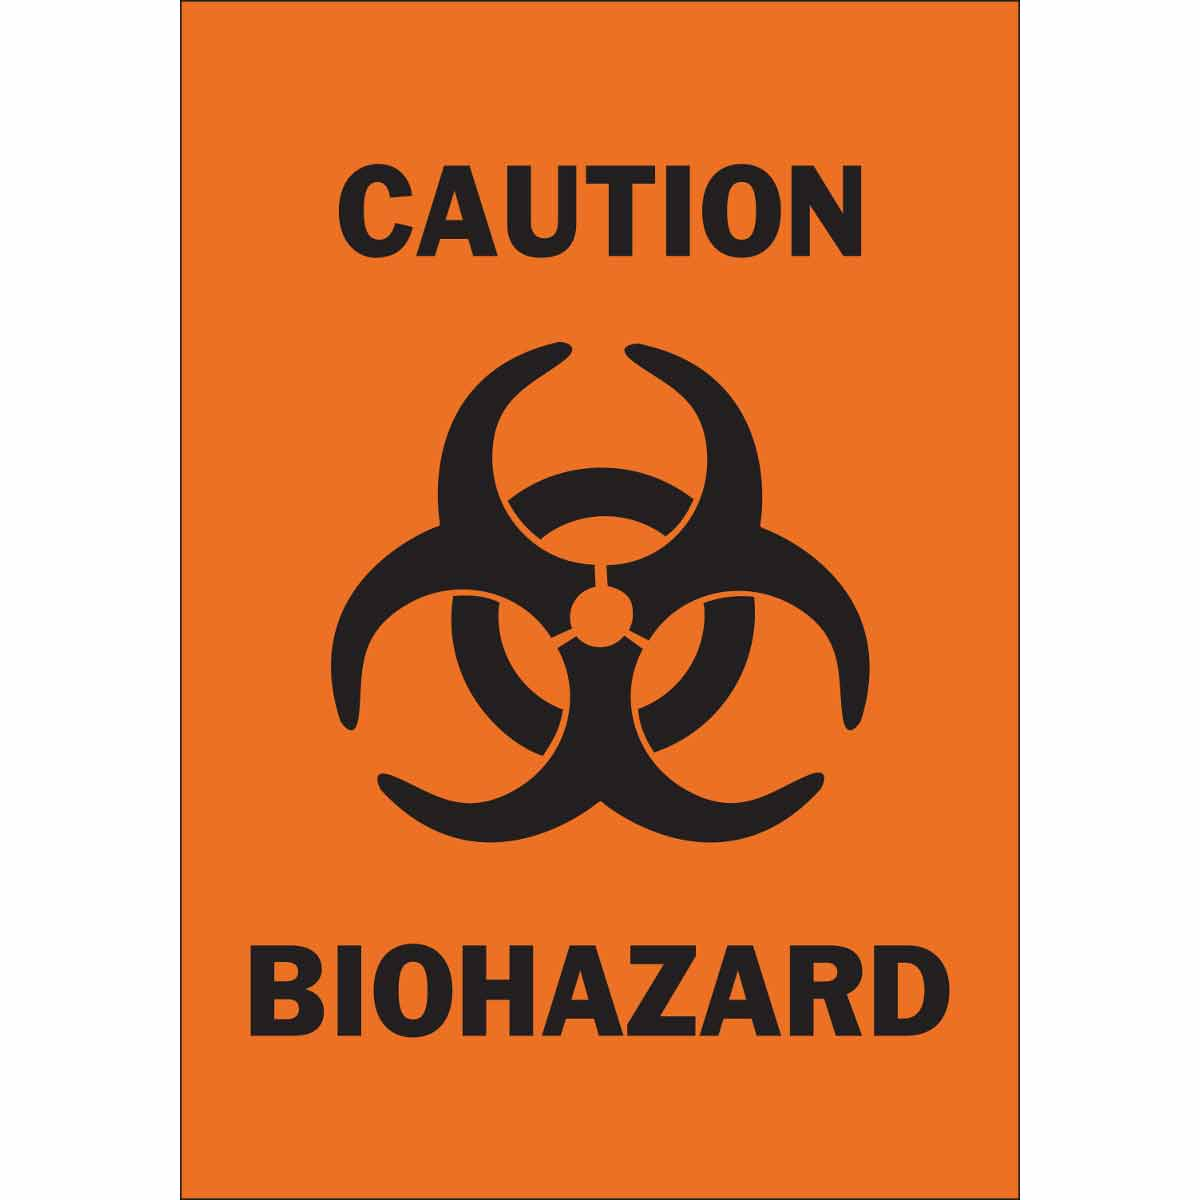 picture about Biohazard Sign Printable identified as Warning Biohazard Signal